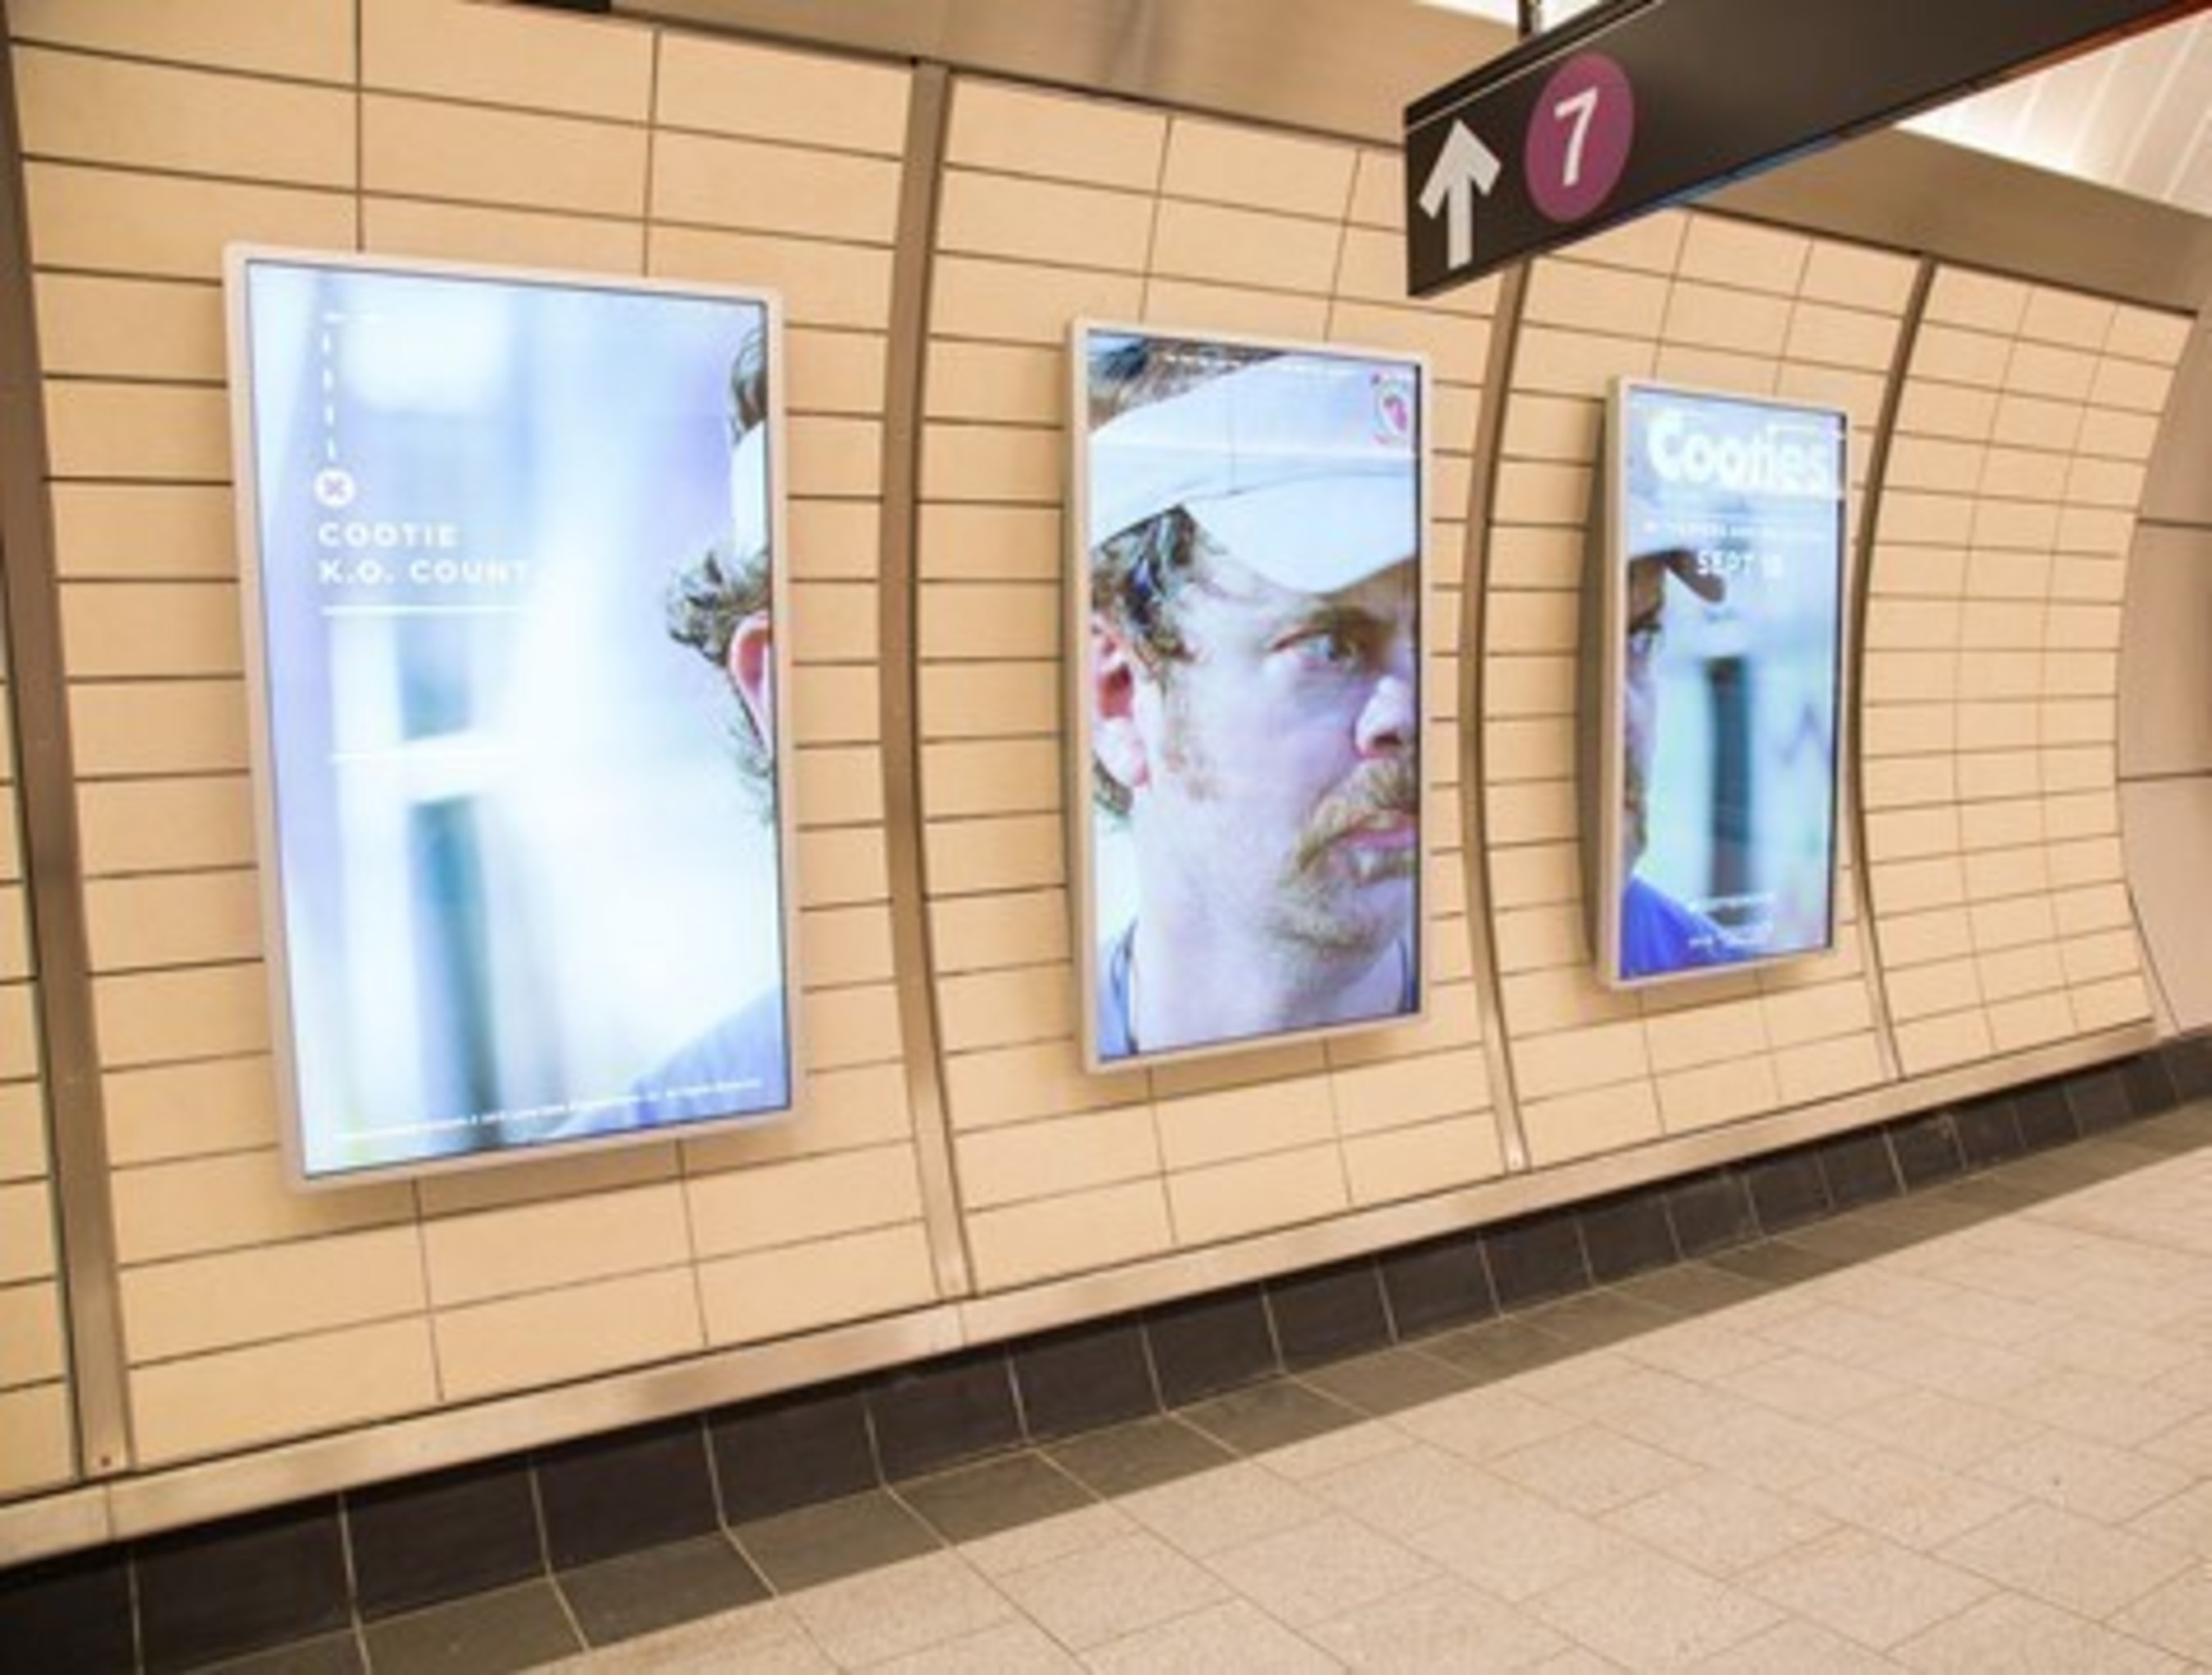 OUTFRONT Media Launches Dynamic Cloud-Based Digital Out-of-Home Signage at New 34th Street - Hudson Yards Station